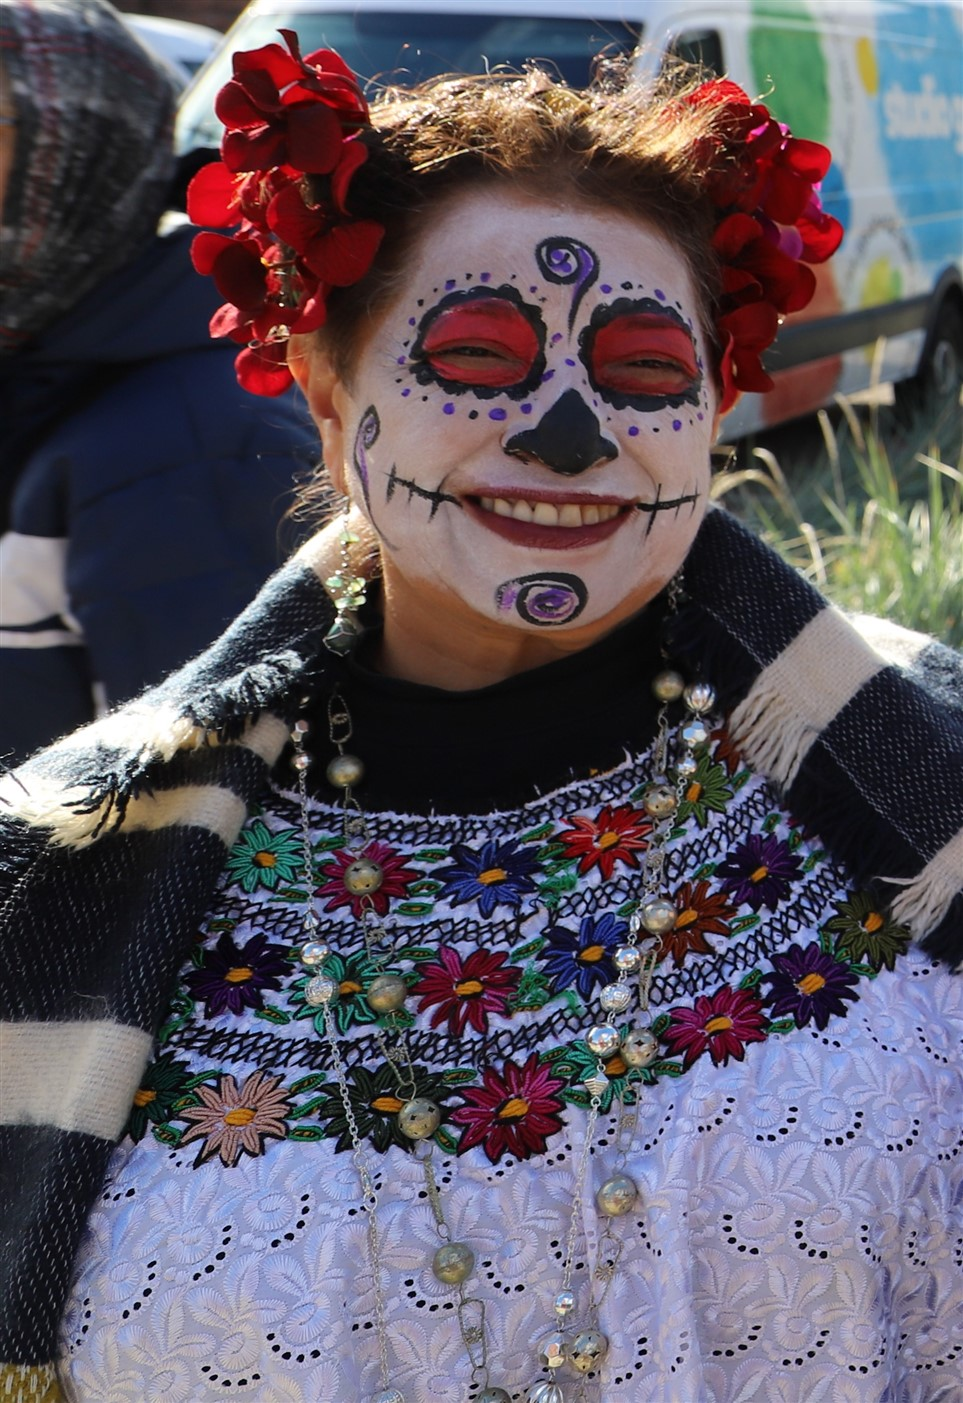 2018 11 03 136 Cleveland Day of the Dead Parade.jpg